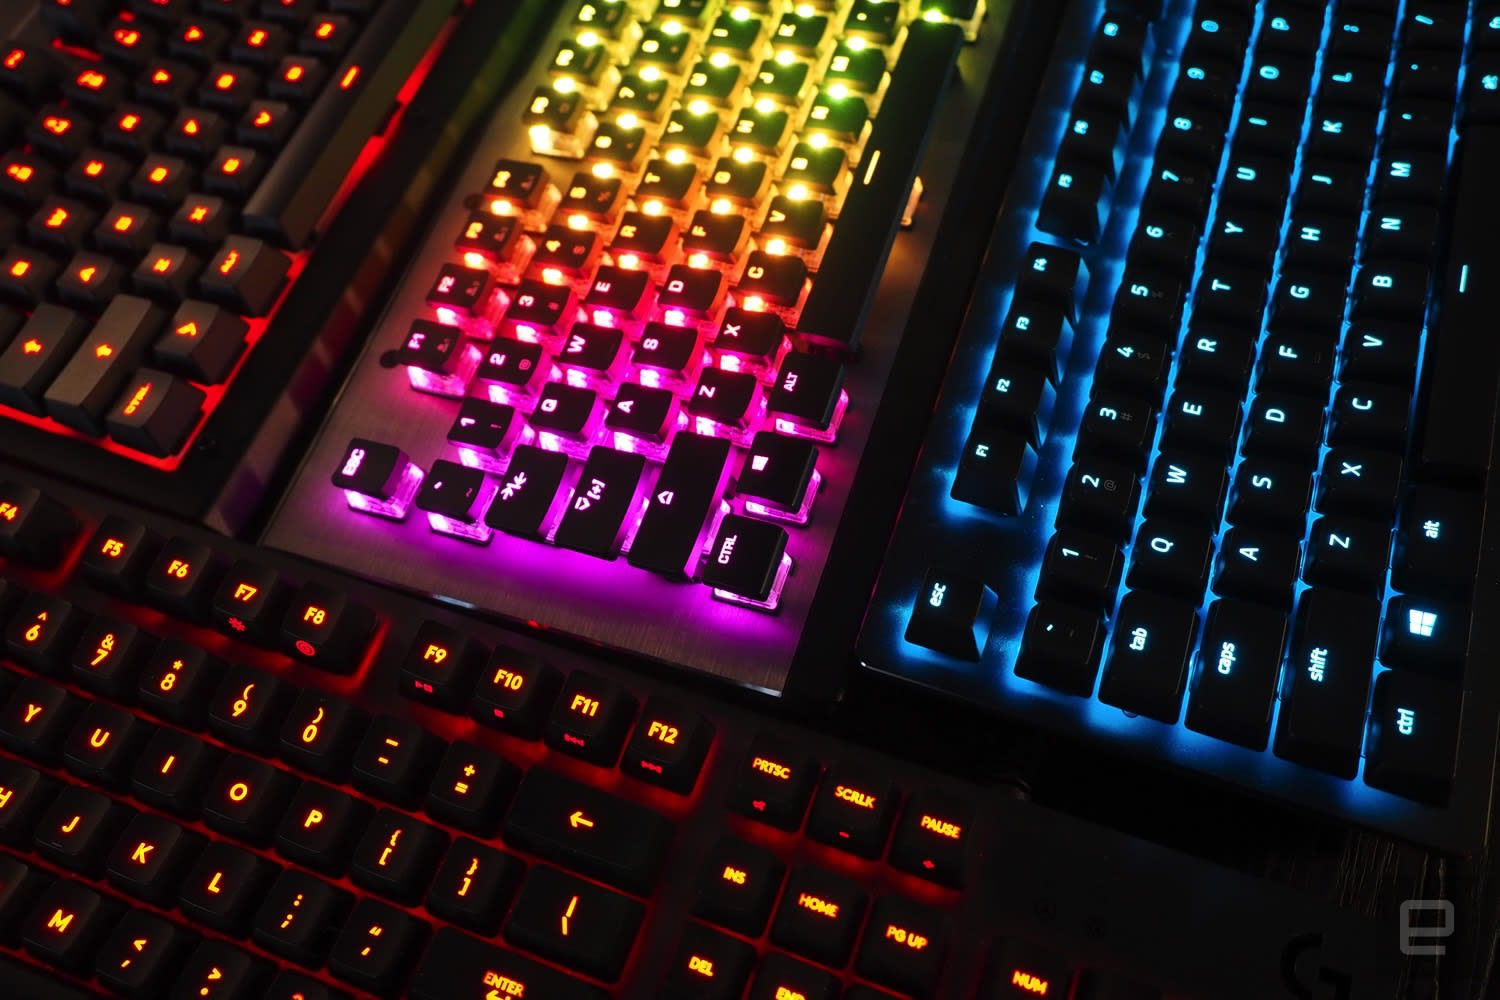 How to buy a gaming keyboard